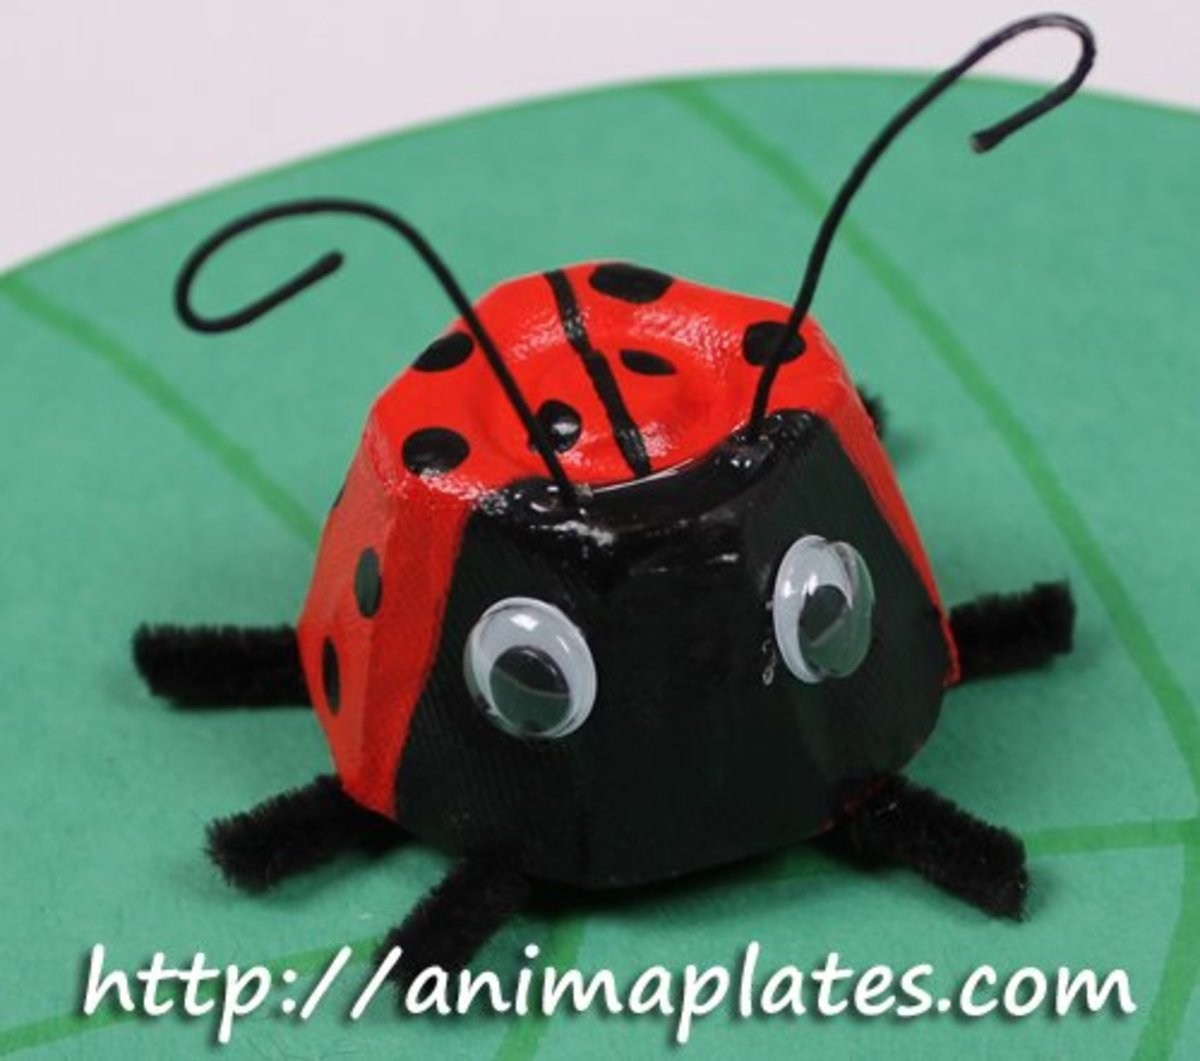 How to Make a Ladybug Craft With Egg Cartons